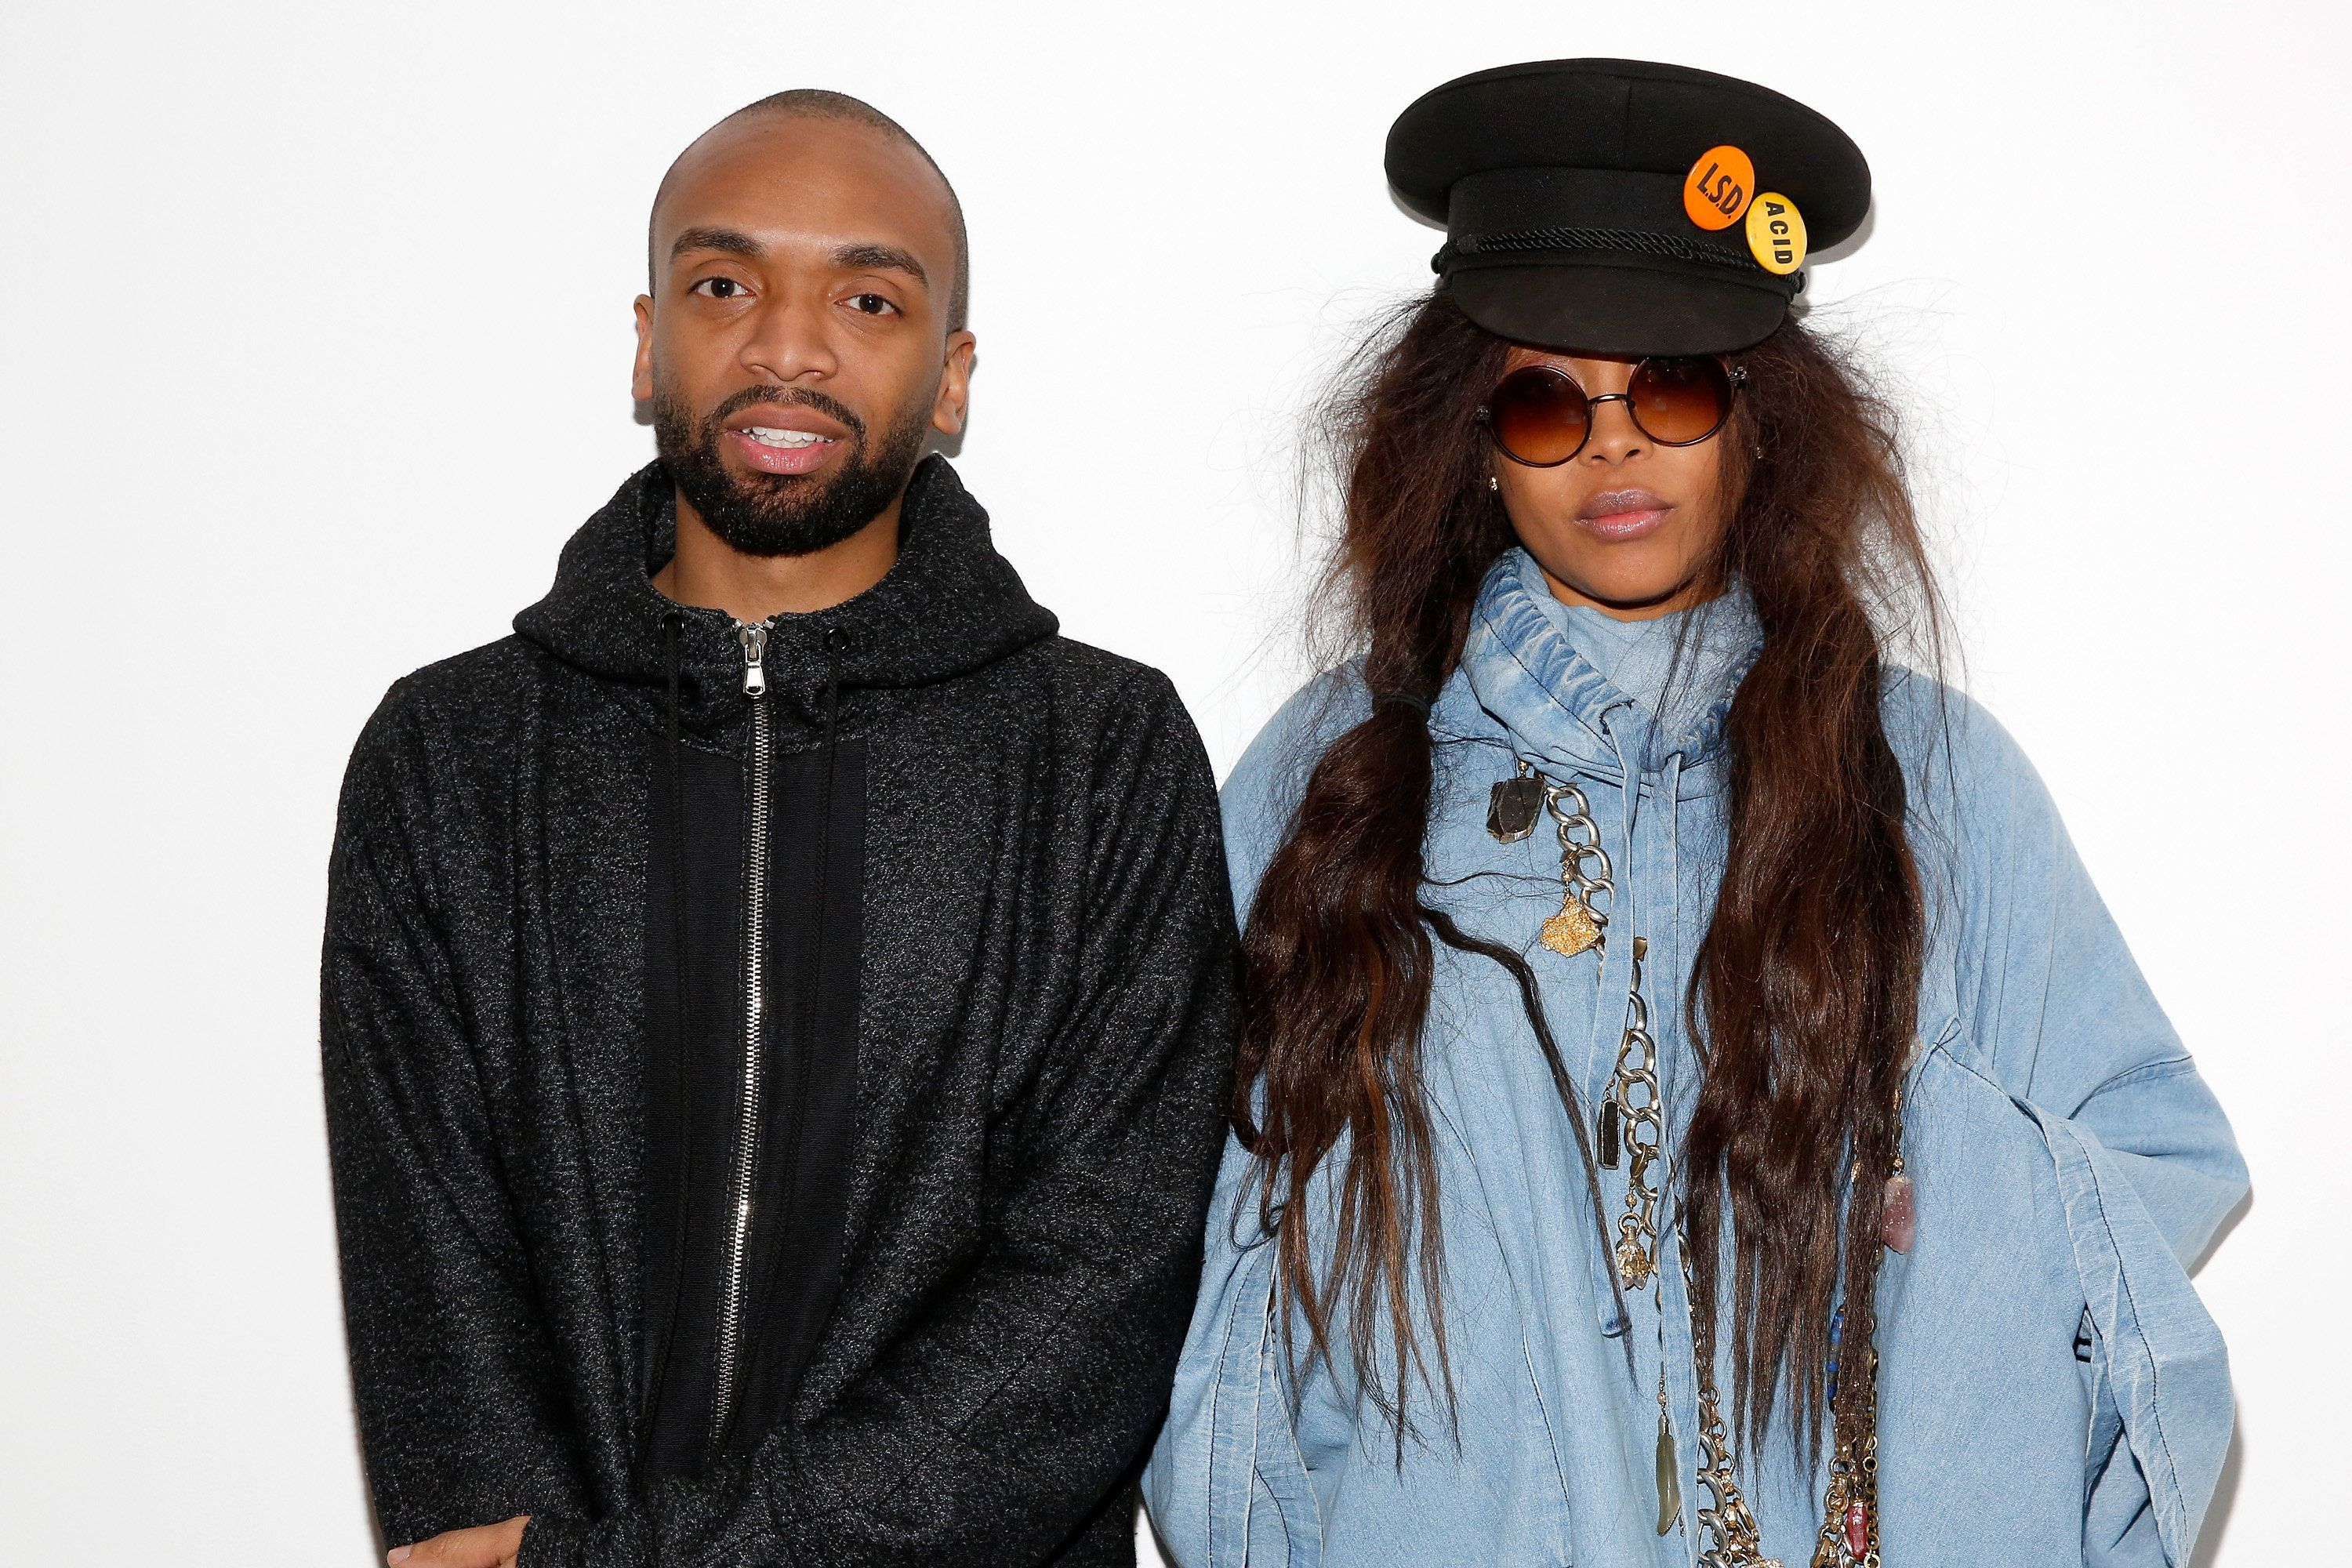 NEW YORK, NY - FEBRUARY 13:  Fashion designer Kerby Jean-Raymond (L) and stylist and singer-songwriter Erykah Badu pose backstage at the Pyer Moss Fall 2016 fashion show during MADE Fashion Week at Milk Studios on February 13, 2016 in New York City.  (Photo by Mireya Acierto/Getty Images)